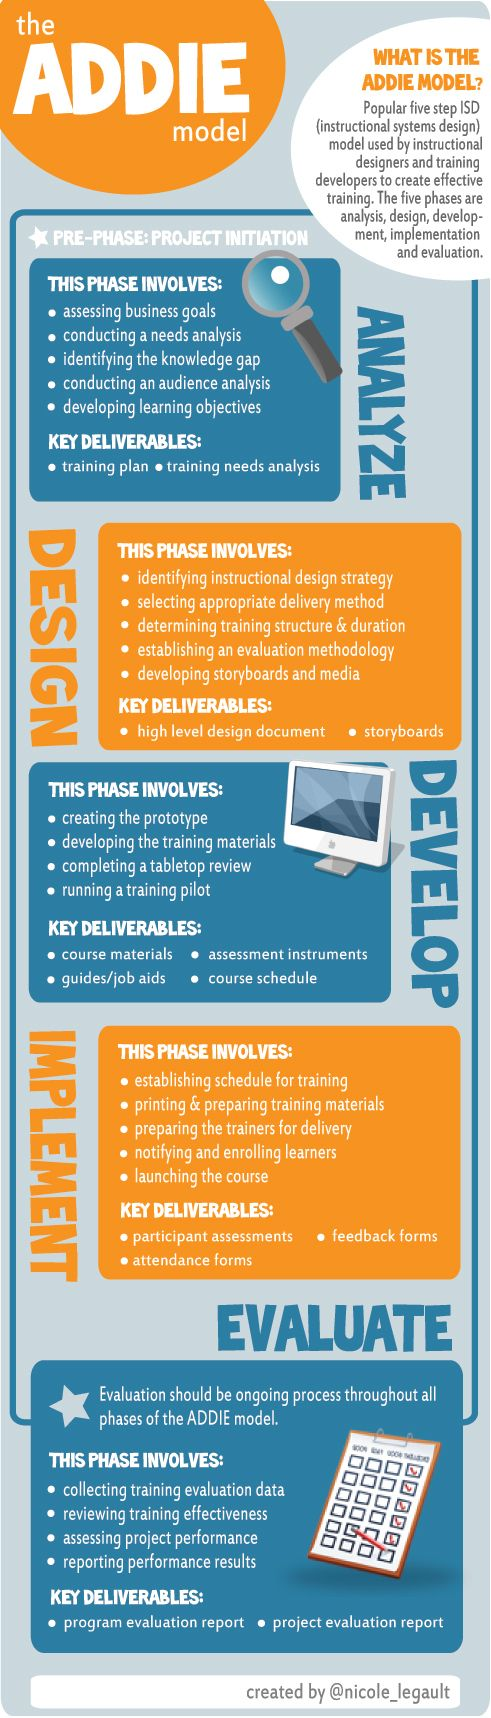 The Addie Model Template Diagram With Examples Instructional Design Instructional Technology Training Design